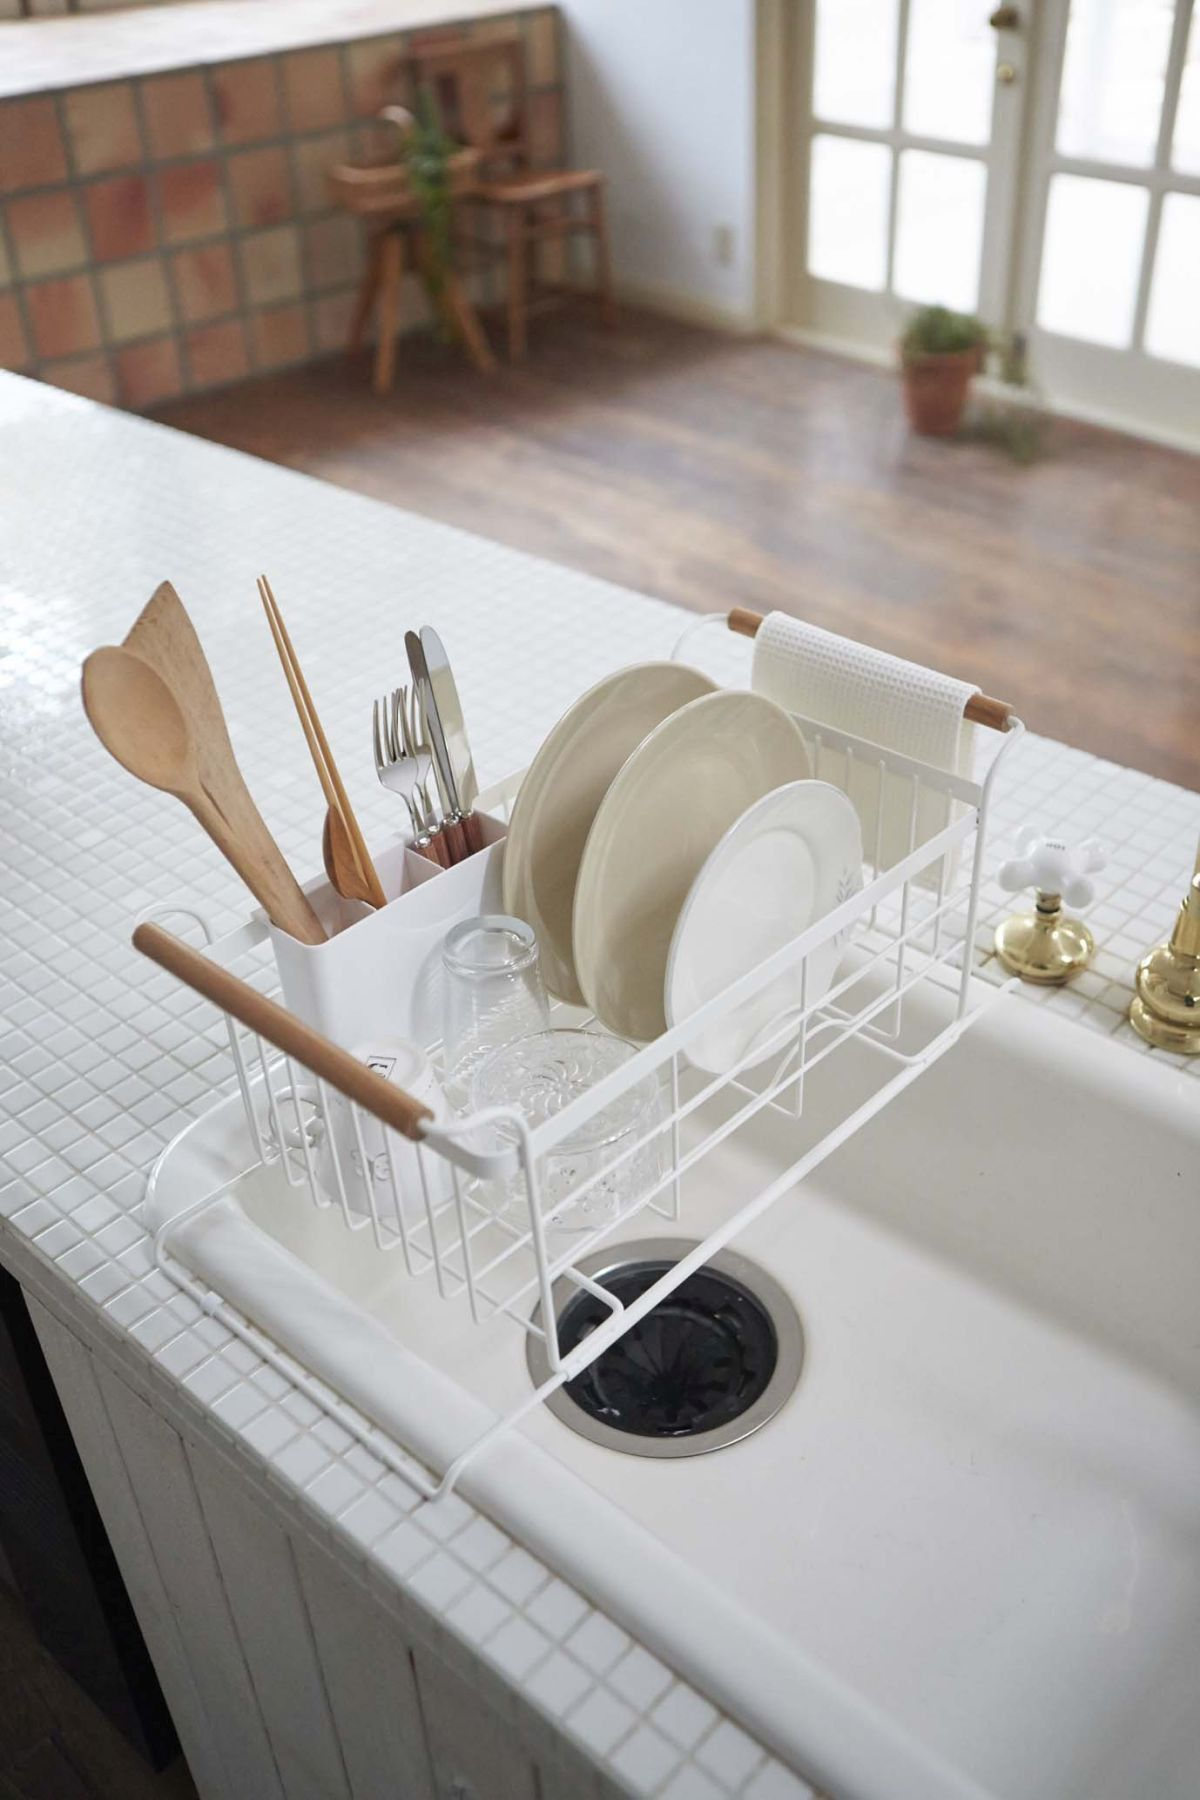 Tosca Over The Sink Dish Drainer Rack In White Design By Yamazaki